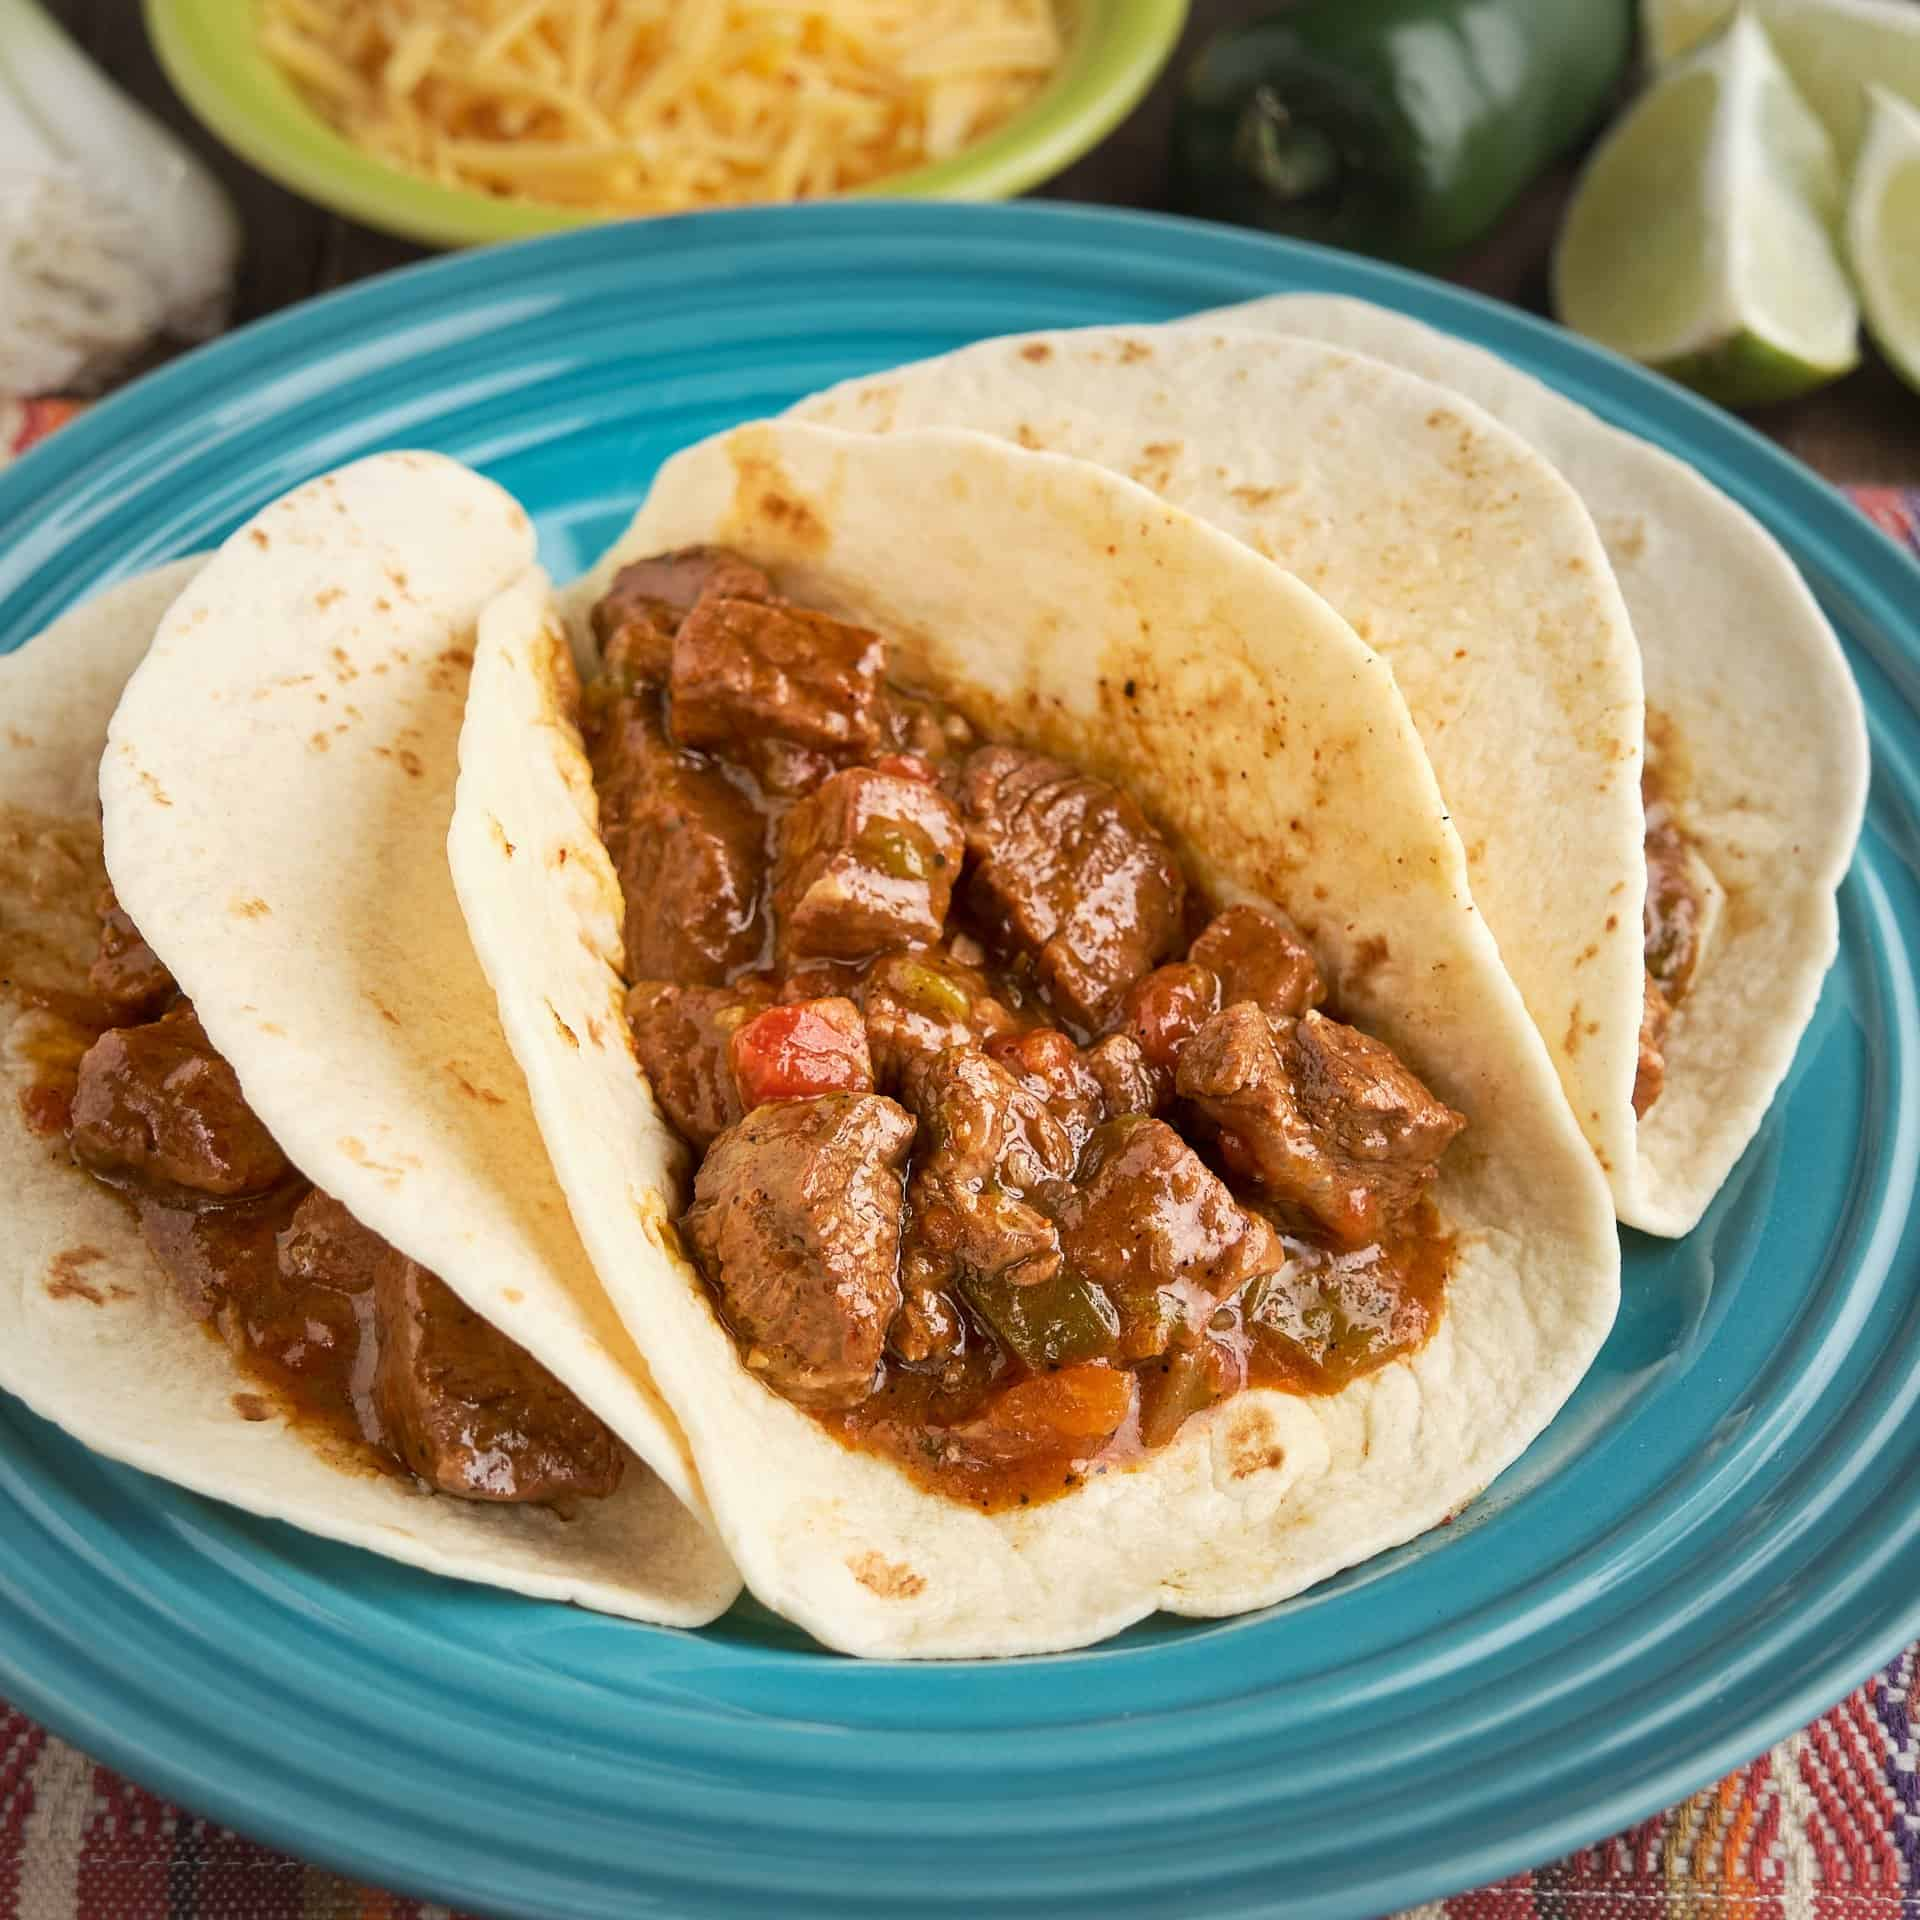 A plate of three carne guisada tacos